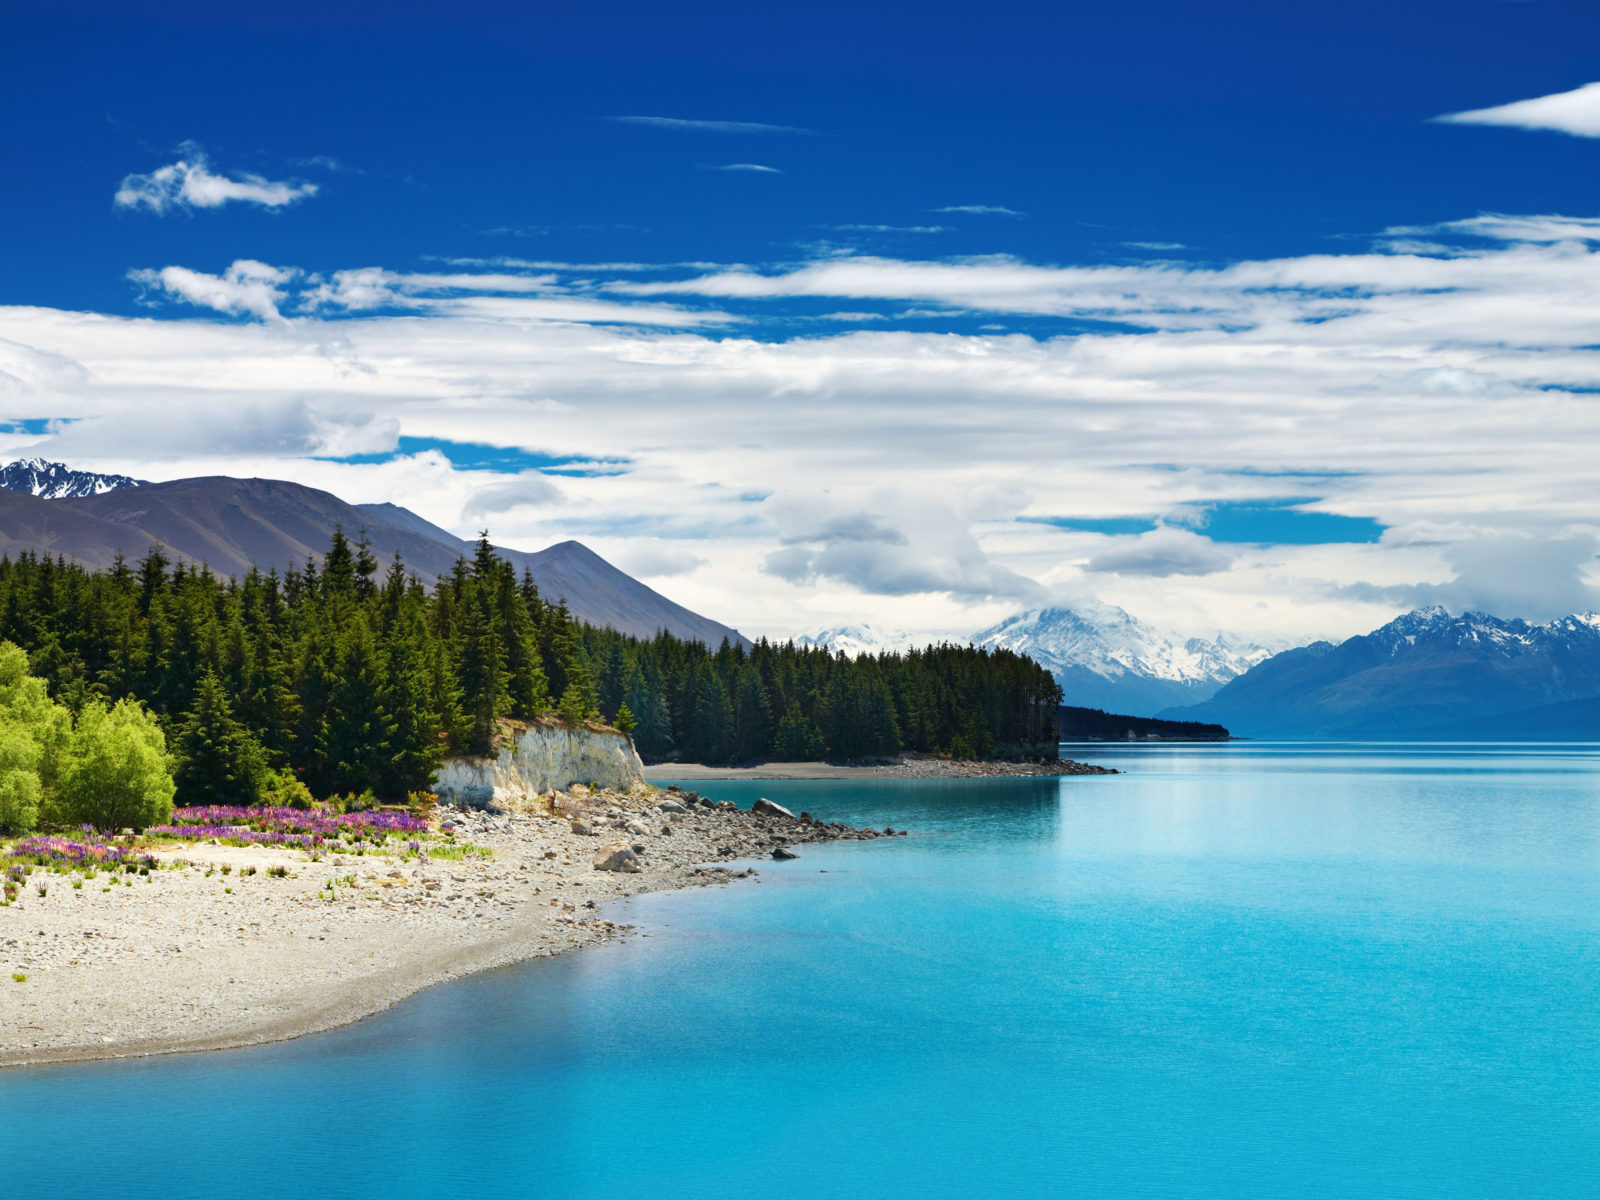 Hd Wallpapers For Android Free Download Pukaki Lake New Zealand Wallpapers13 Com